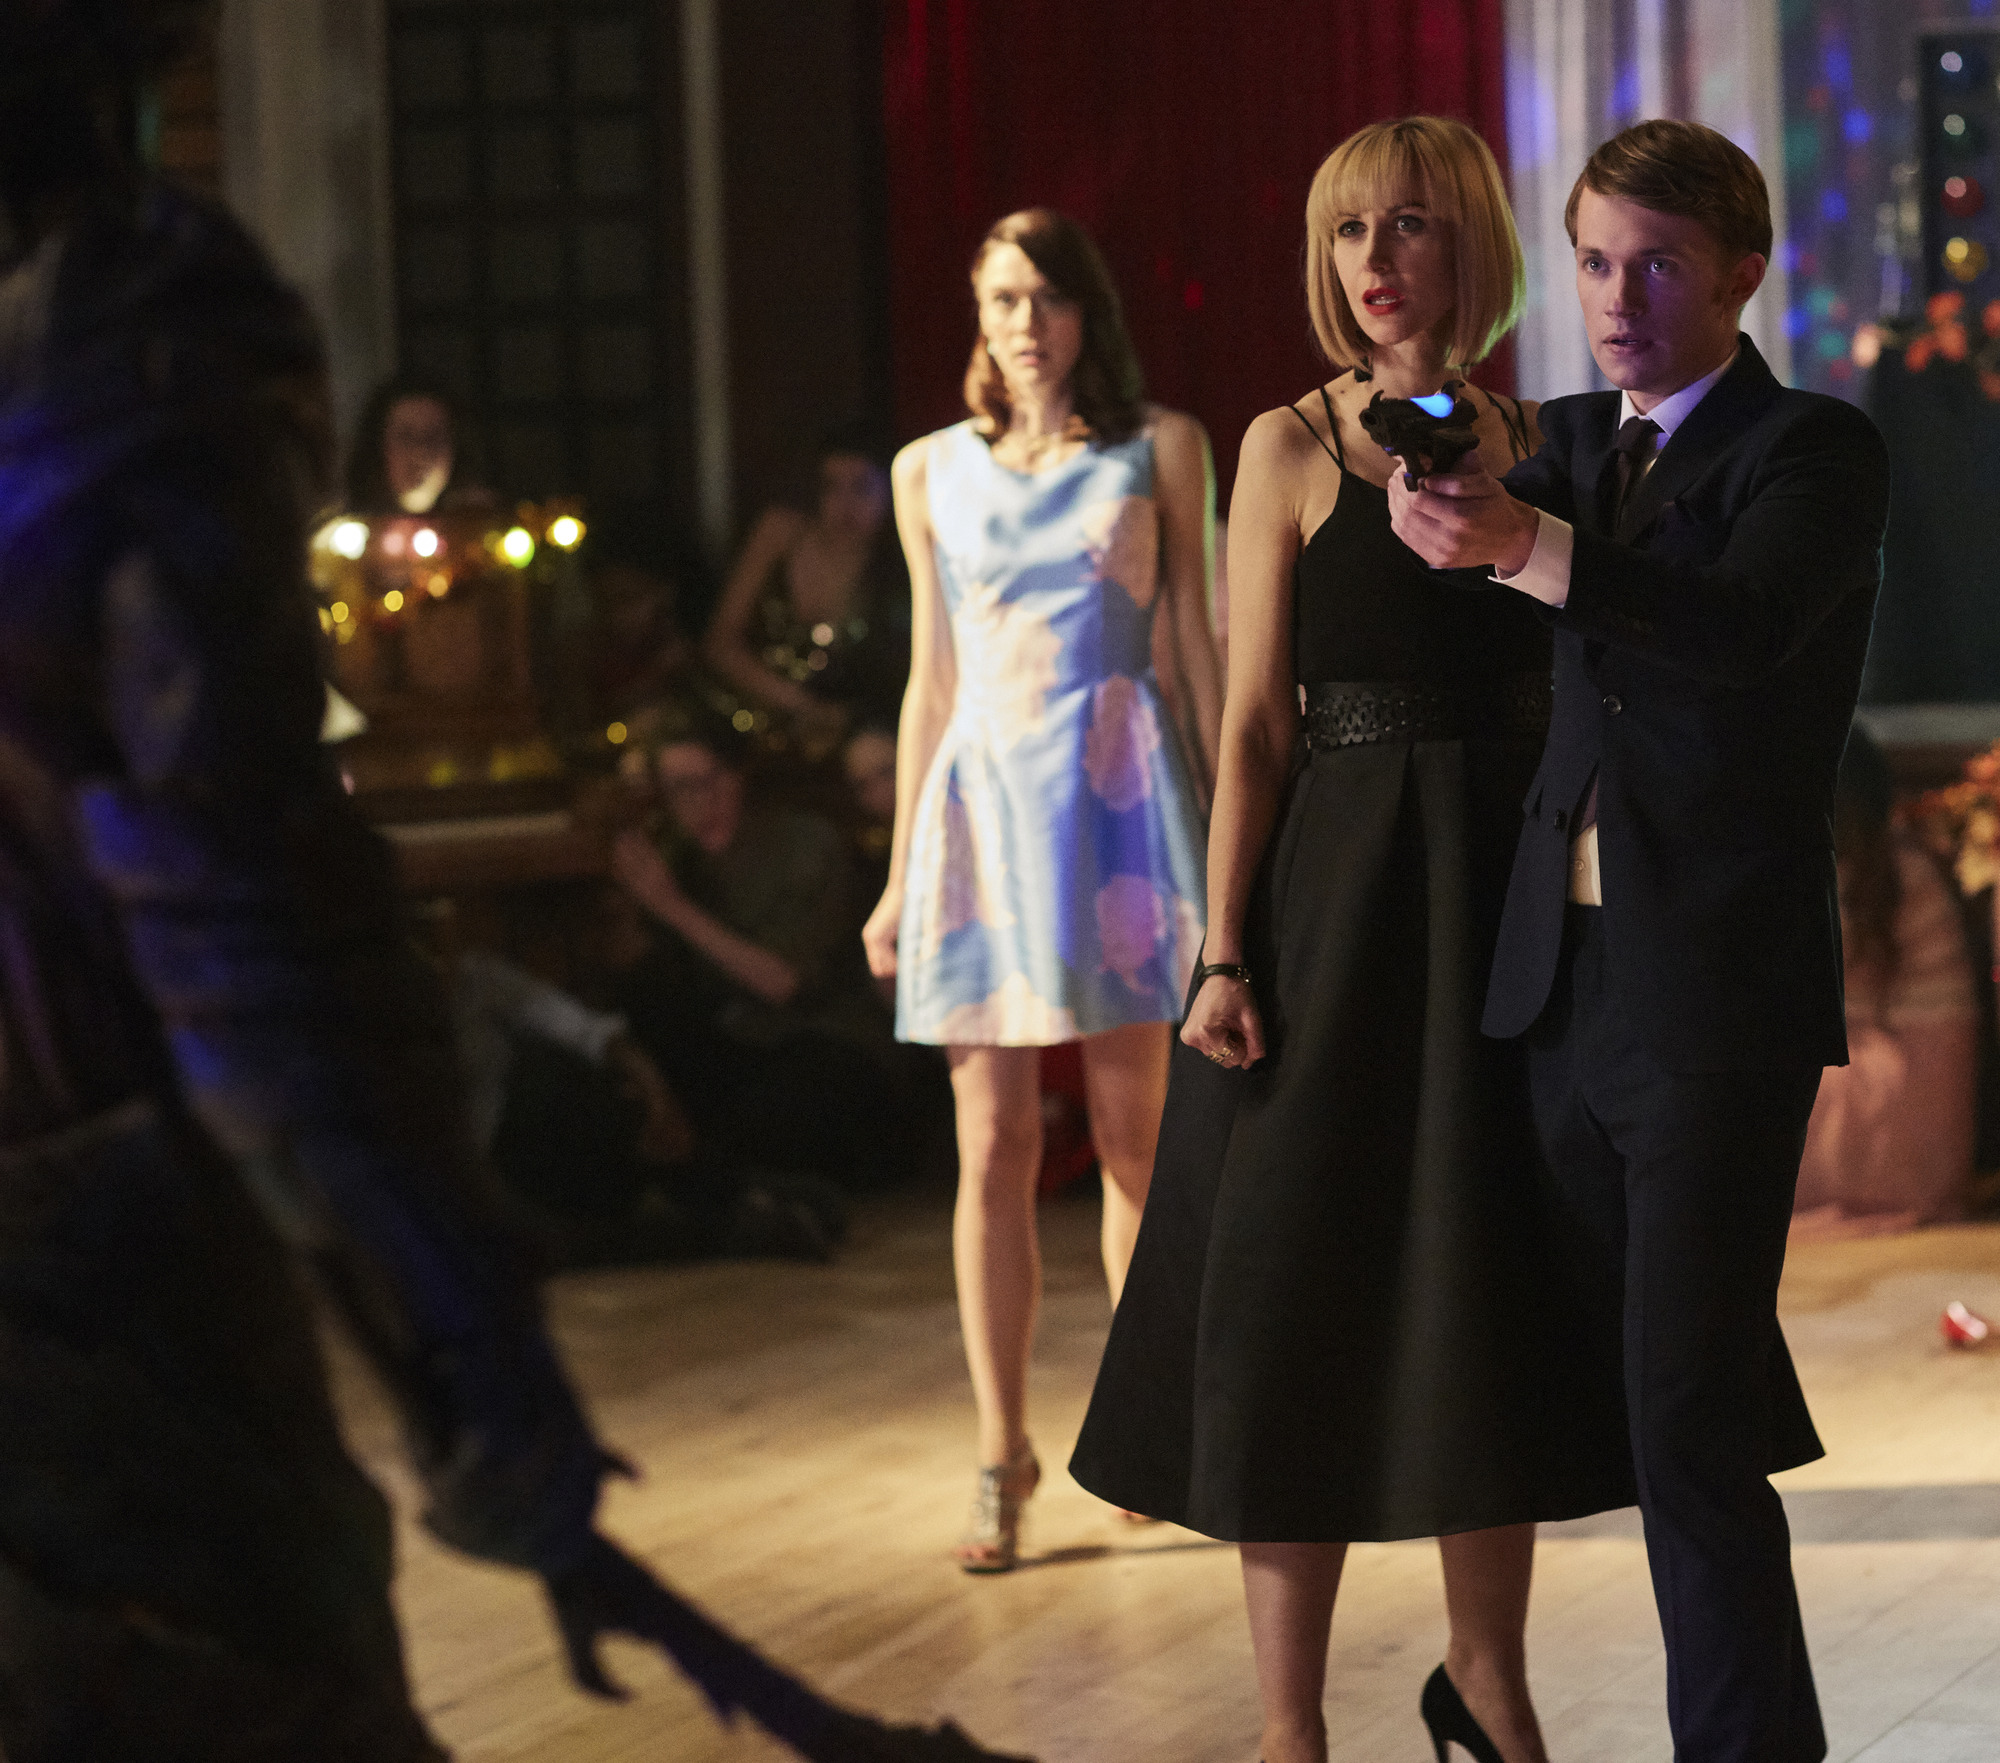 April (SOPHIE HOPKINS), Miss Quill (KATHERINE KELLY), Charlie (GREG AUSTIN) (Credit: BBC/Simon Ridgeway)